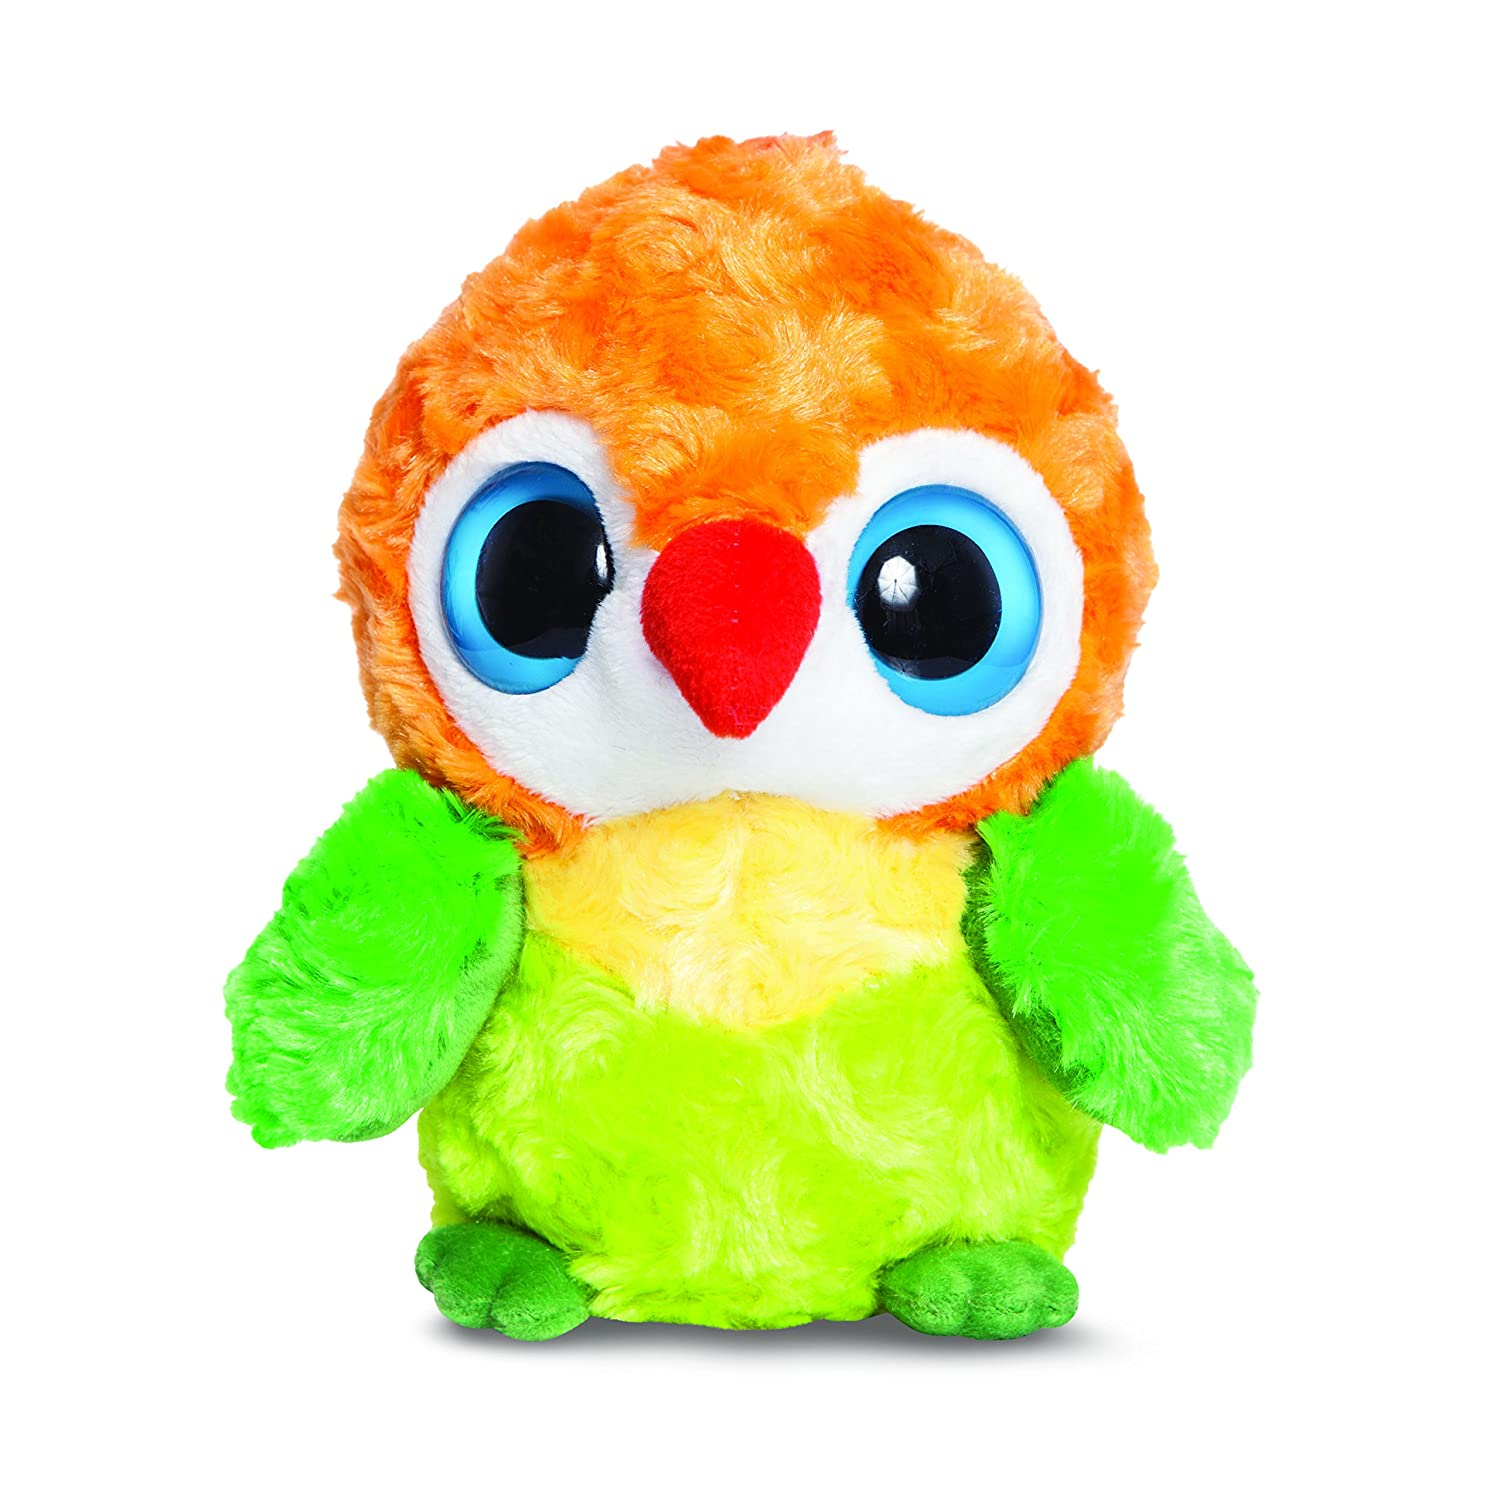 YooHoo & Friends - Love Bird, peluche, 13 cm (Aurora World 60375): Amazon.es: Juguetes y juegos